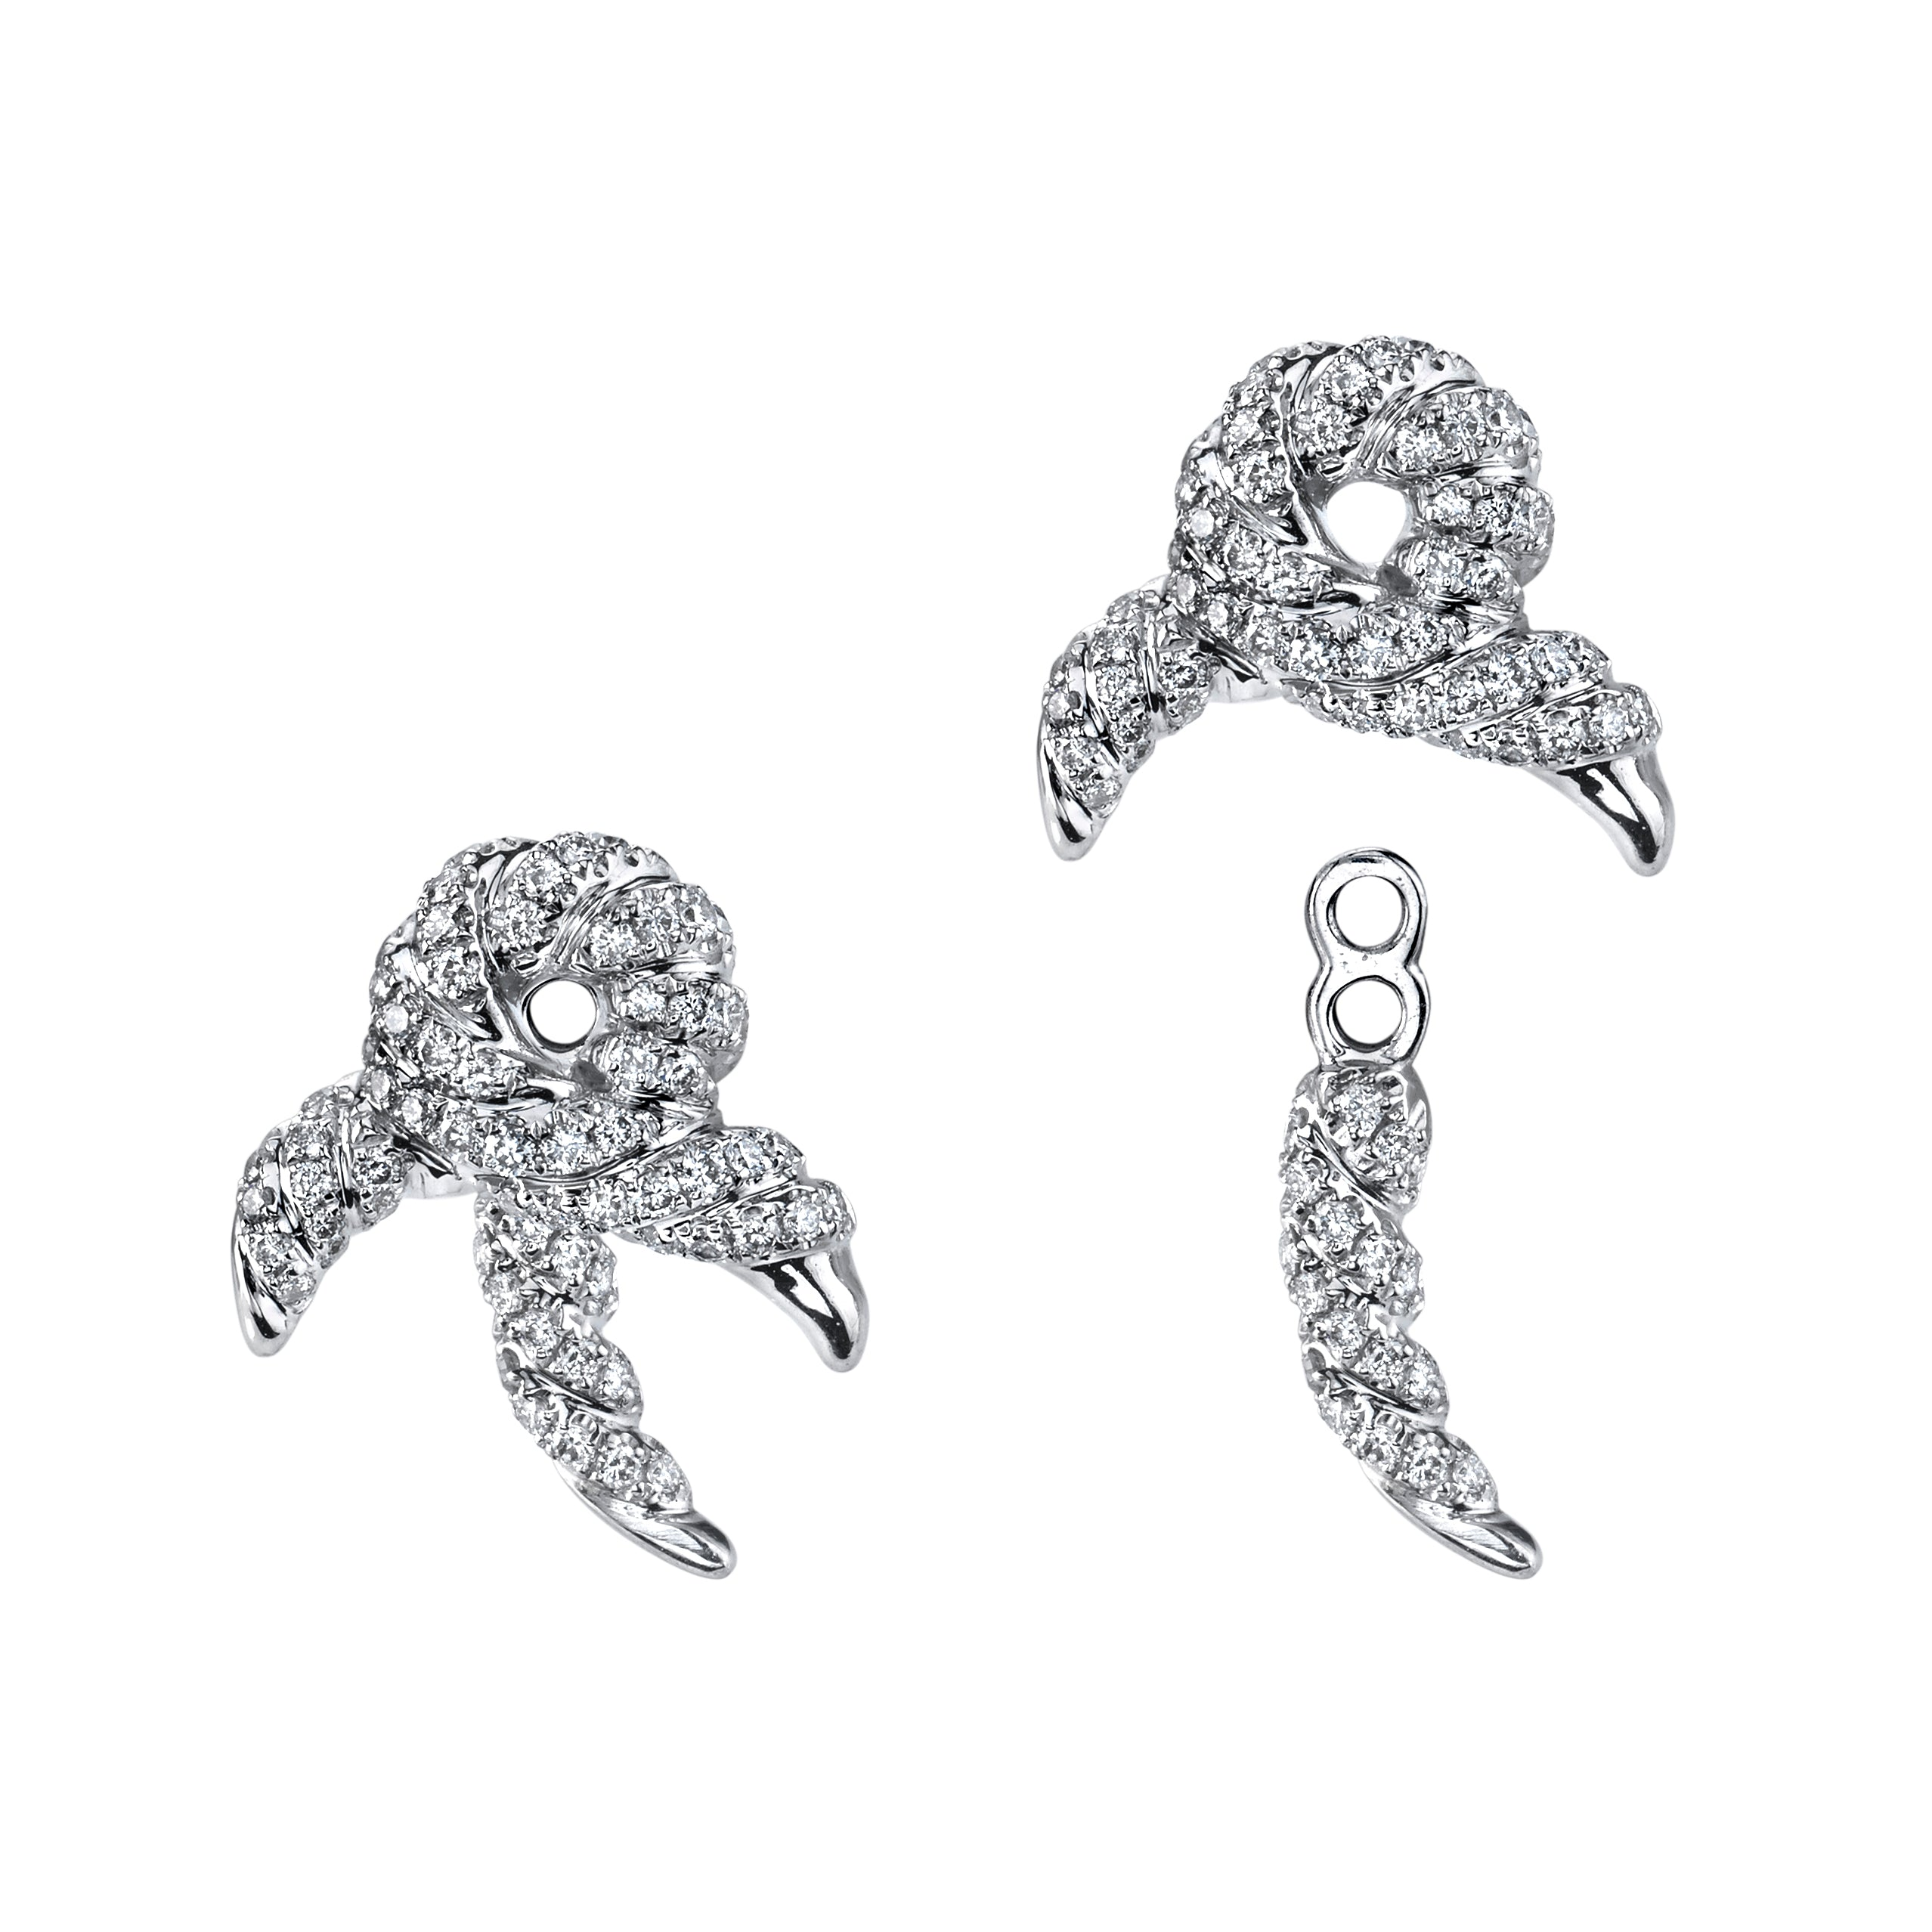 Markhor Earrings